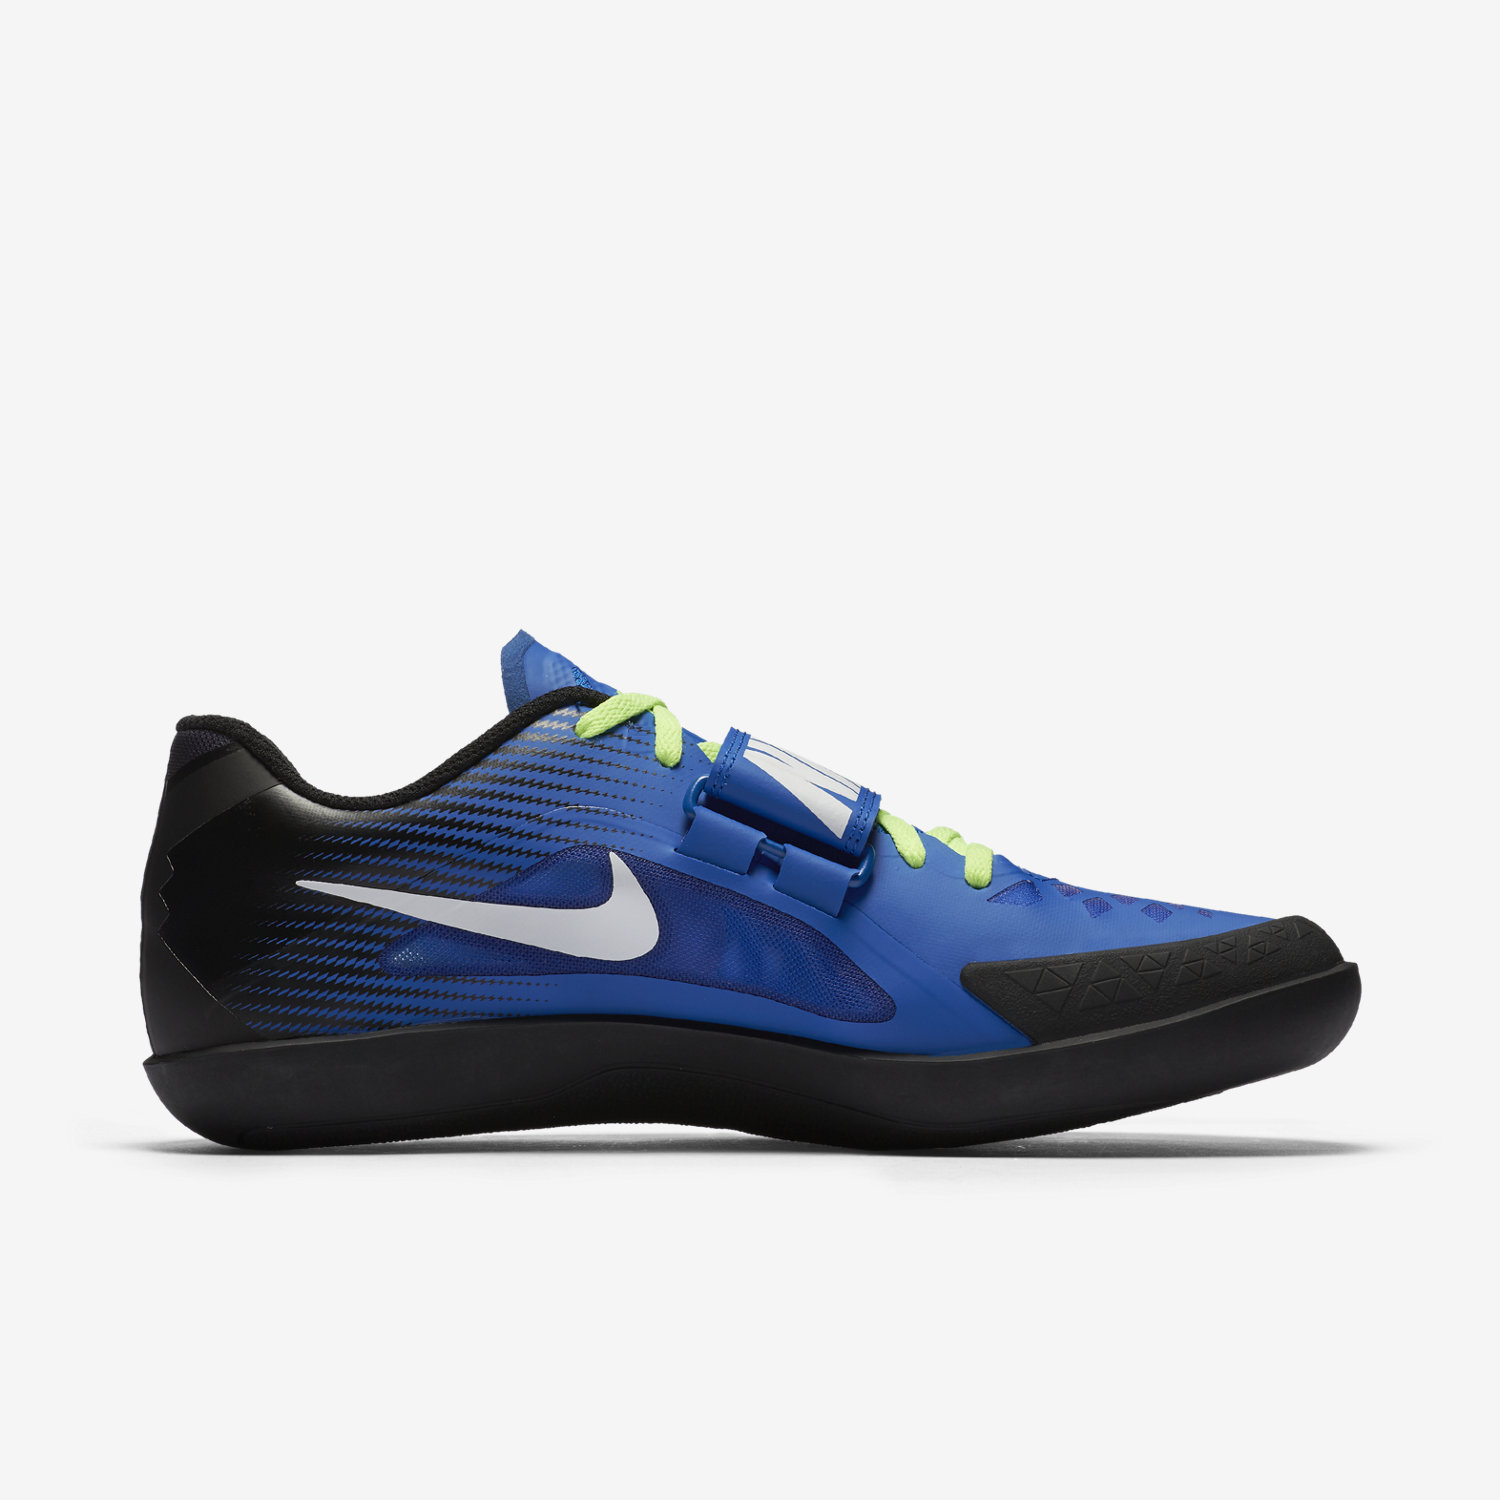 Cheap nike sb shoes stores Buy Online >OFF51% Discounted